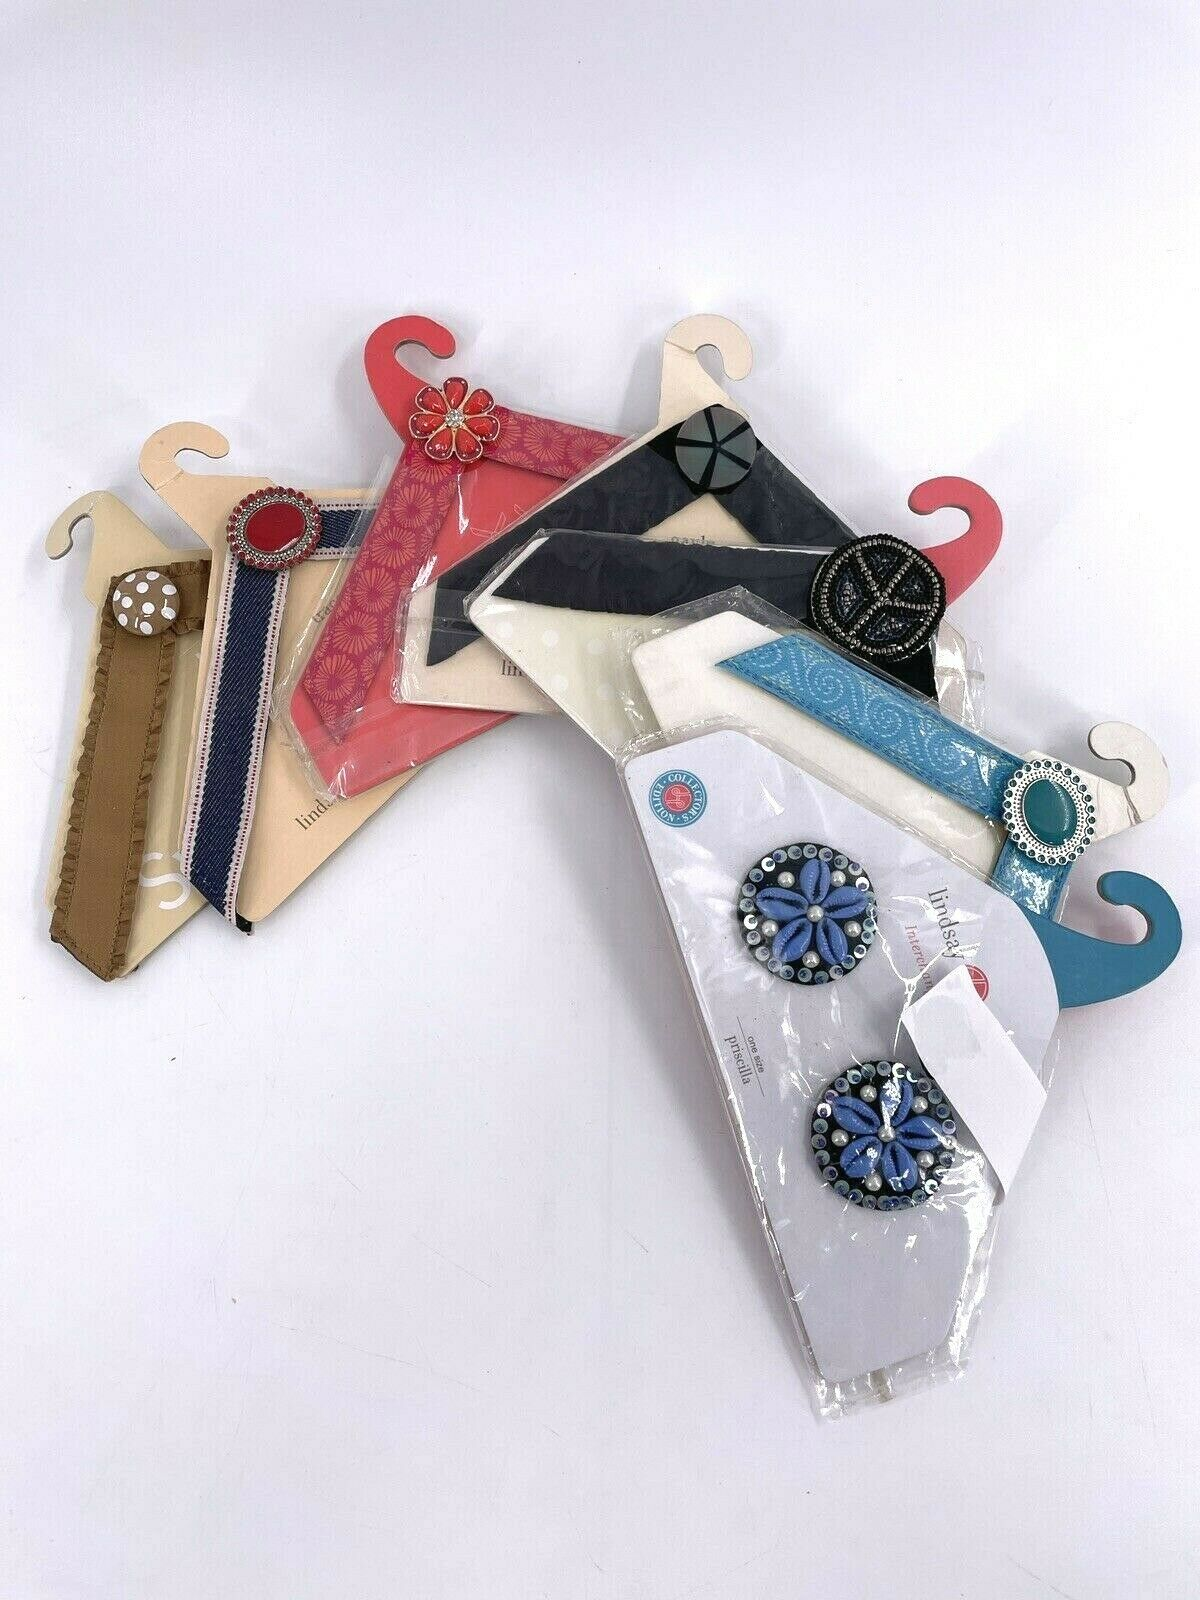 Lindsay Phillips Interchangeable Straps Switchflops 9/10/11 Large tracey addison